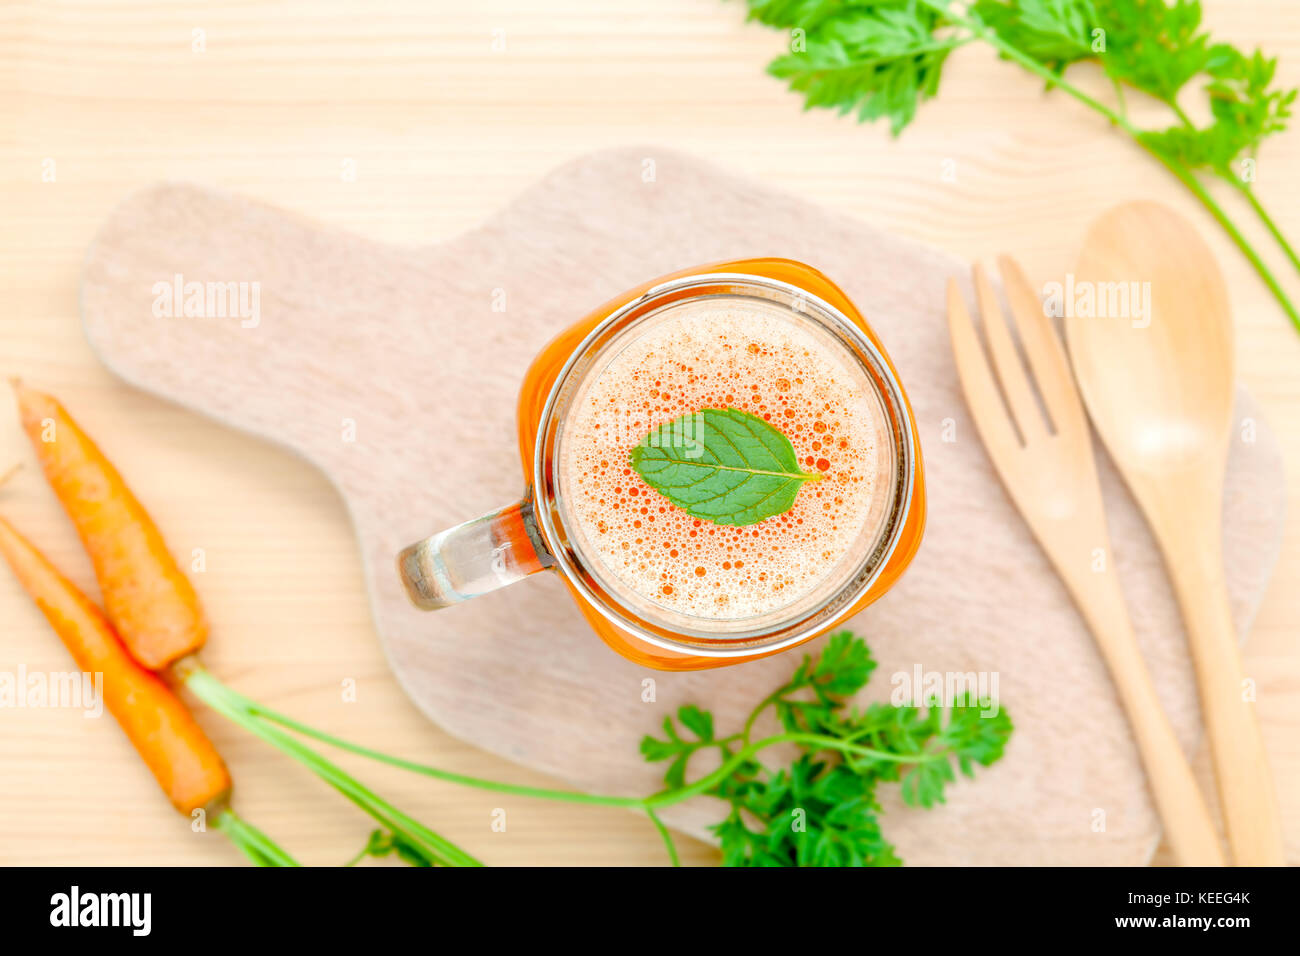 Glasses of carrot juice with carrot roots on wooden background.Glasses of tasty fresh carrot juice.Carrot juice - Stock Image